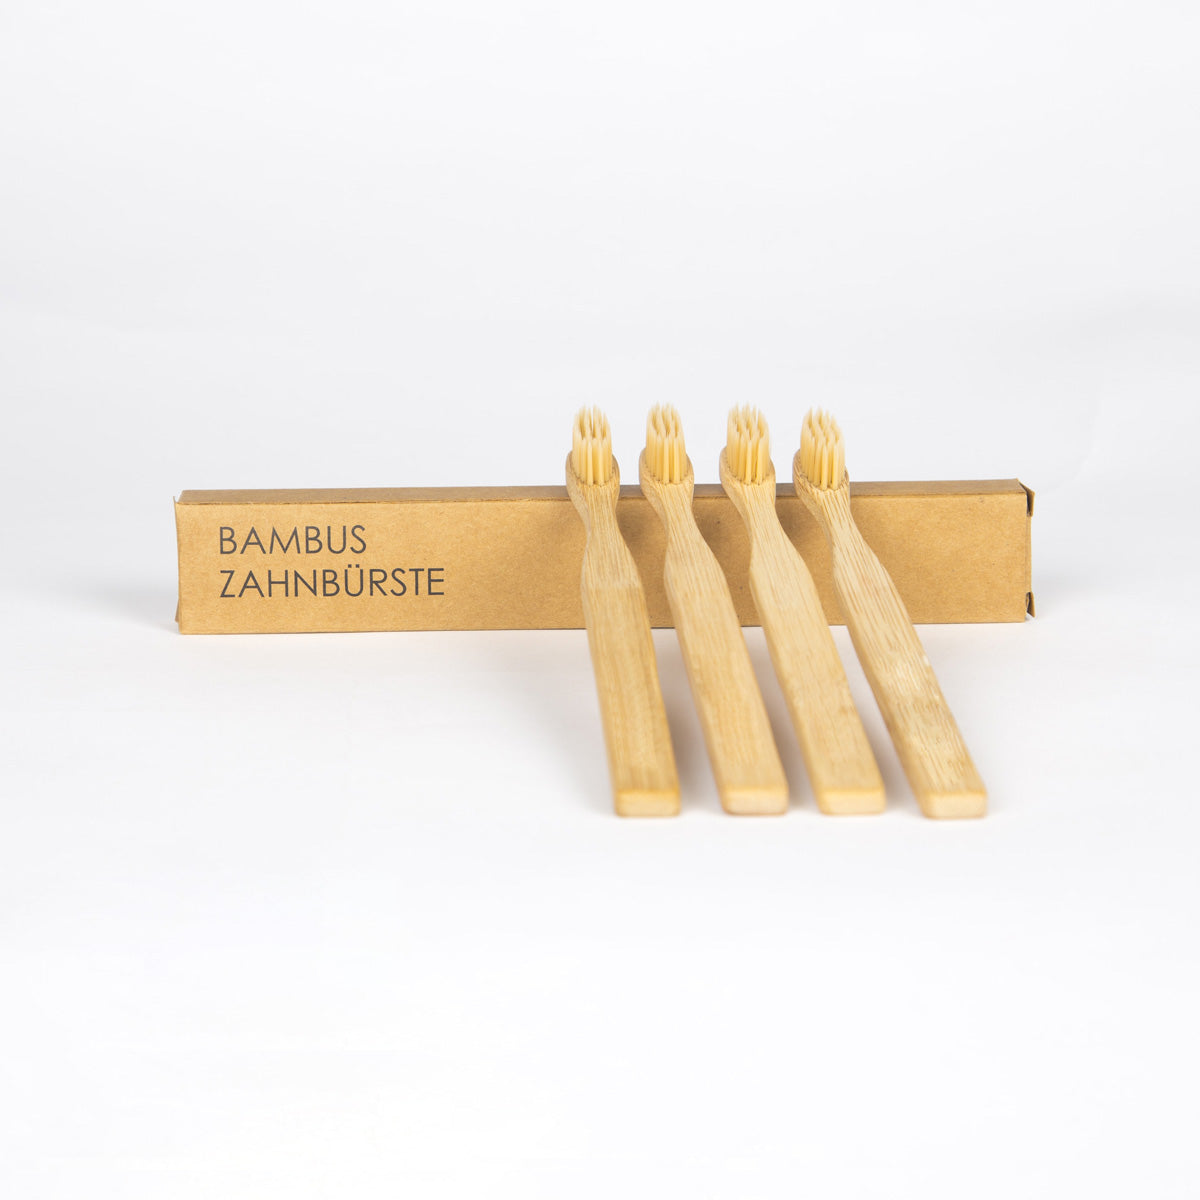 Bamboo Toothbrushes (4 pack)